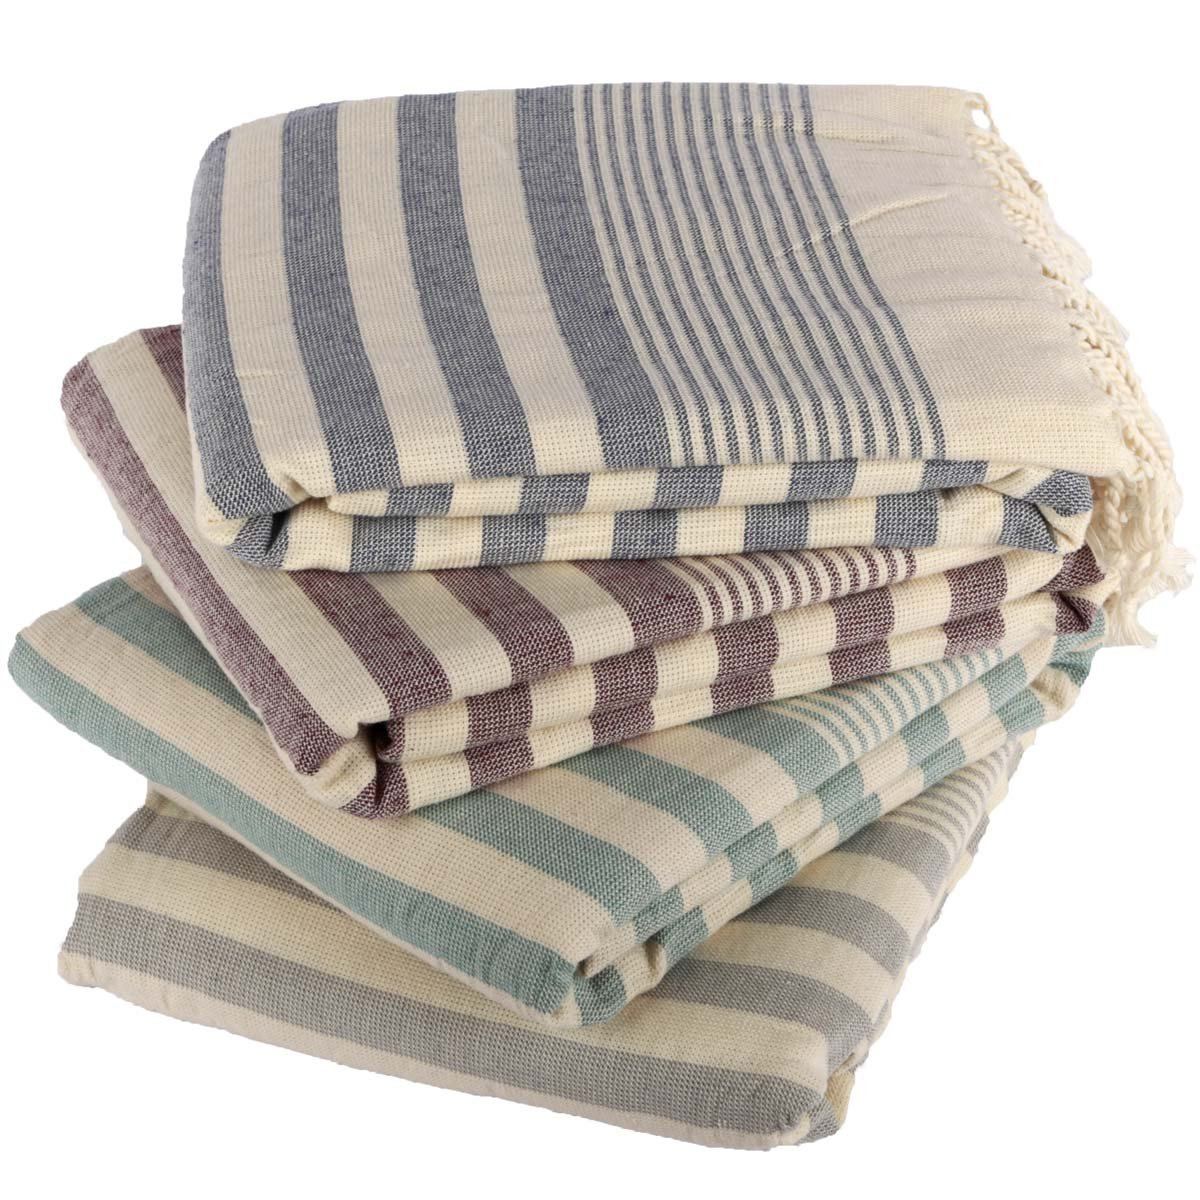 Clotho Towels Turkish Bath and Beach Towel Set of 4 Oversized Terry Peshtemal